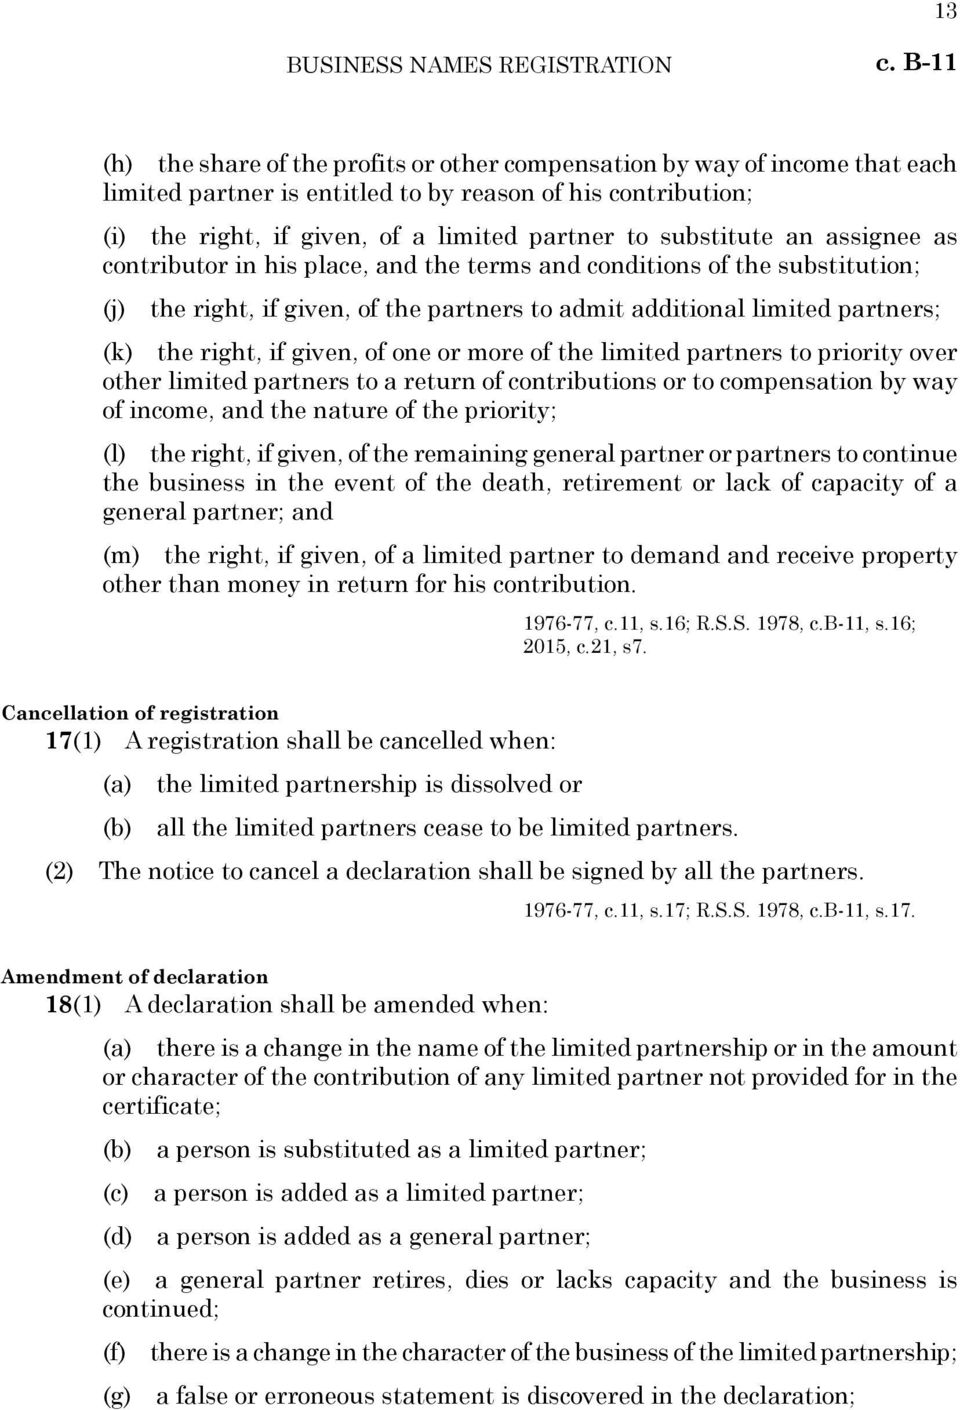 substitute an assignee as contributor in his place, and the terms and conditions of the substitution; (j) the right, if given, of the partners to admit additional limited partners; (k) the right, if